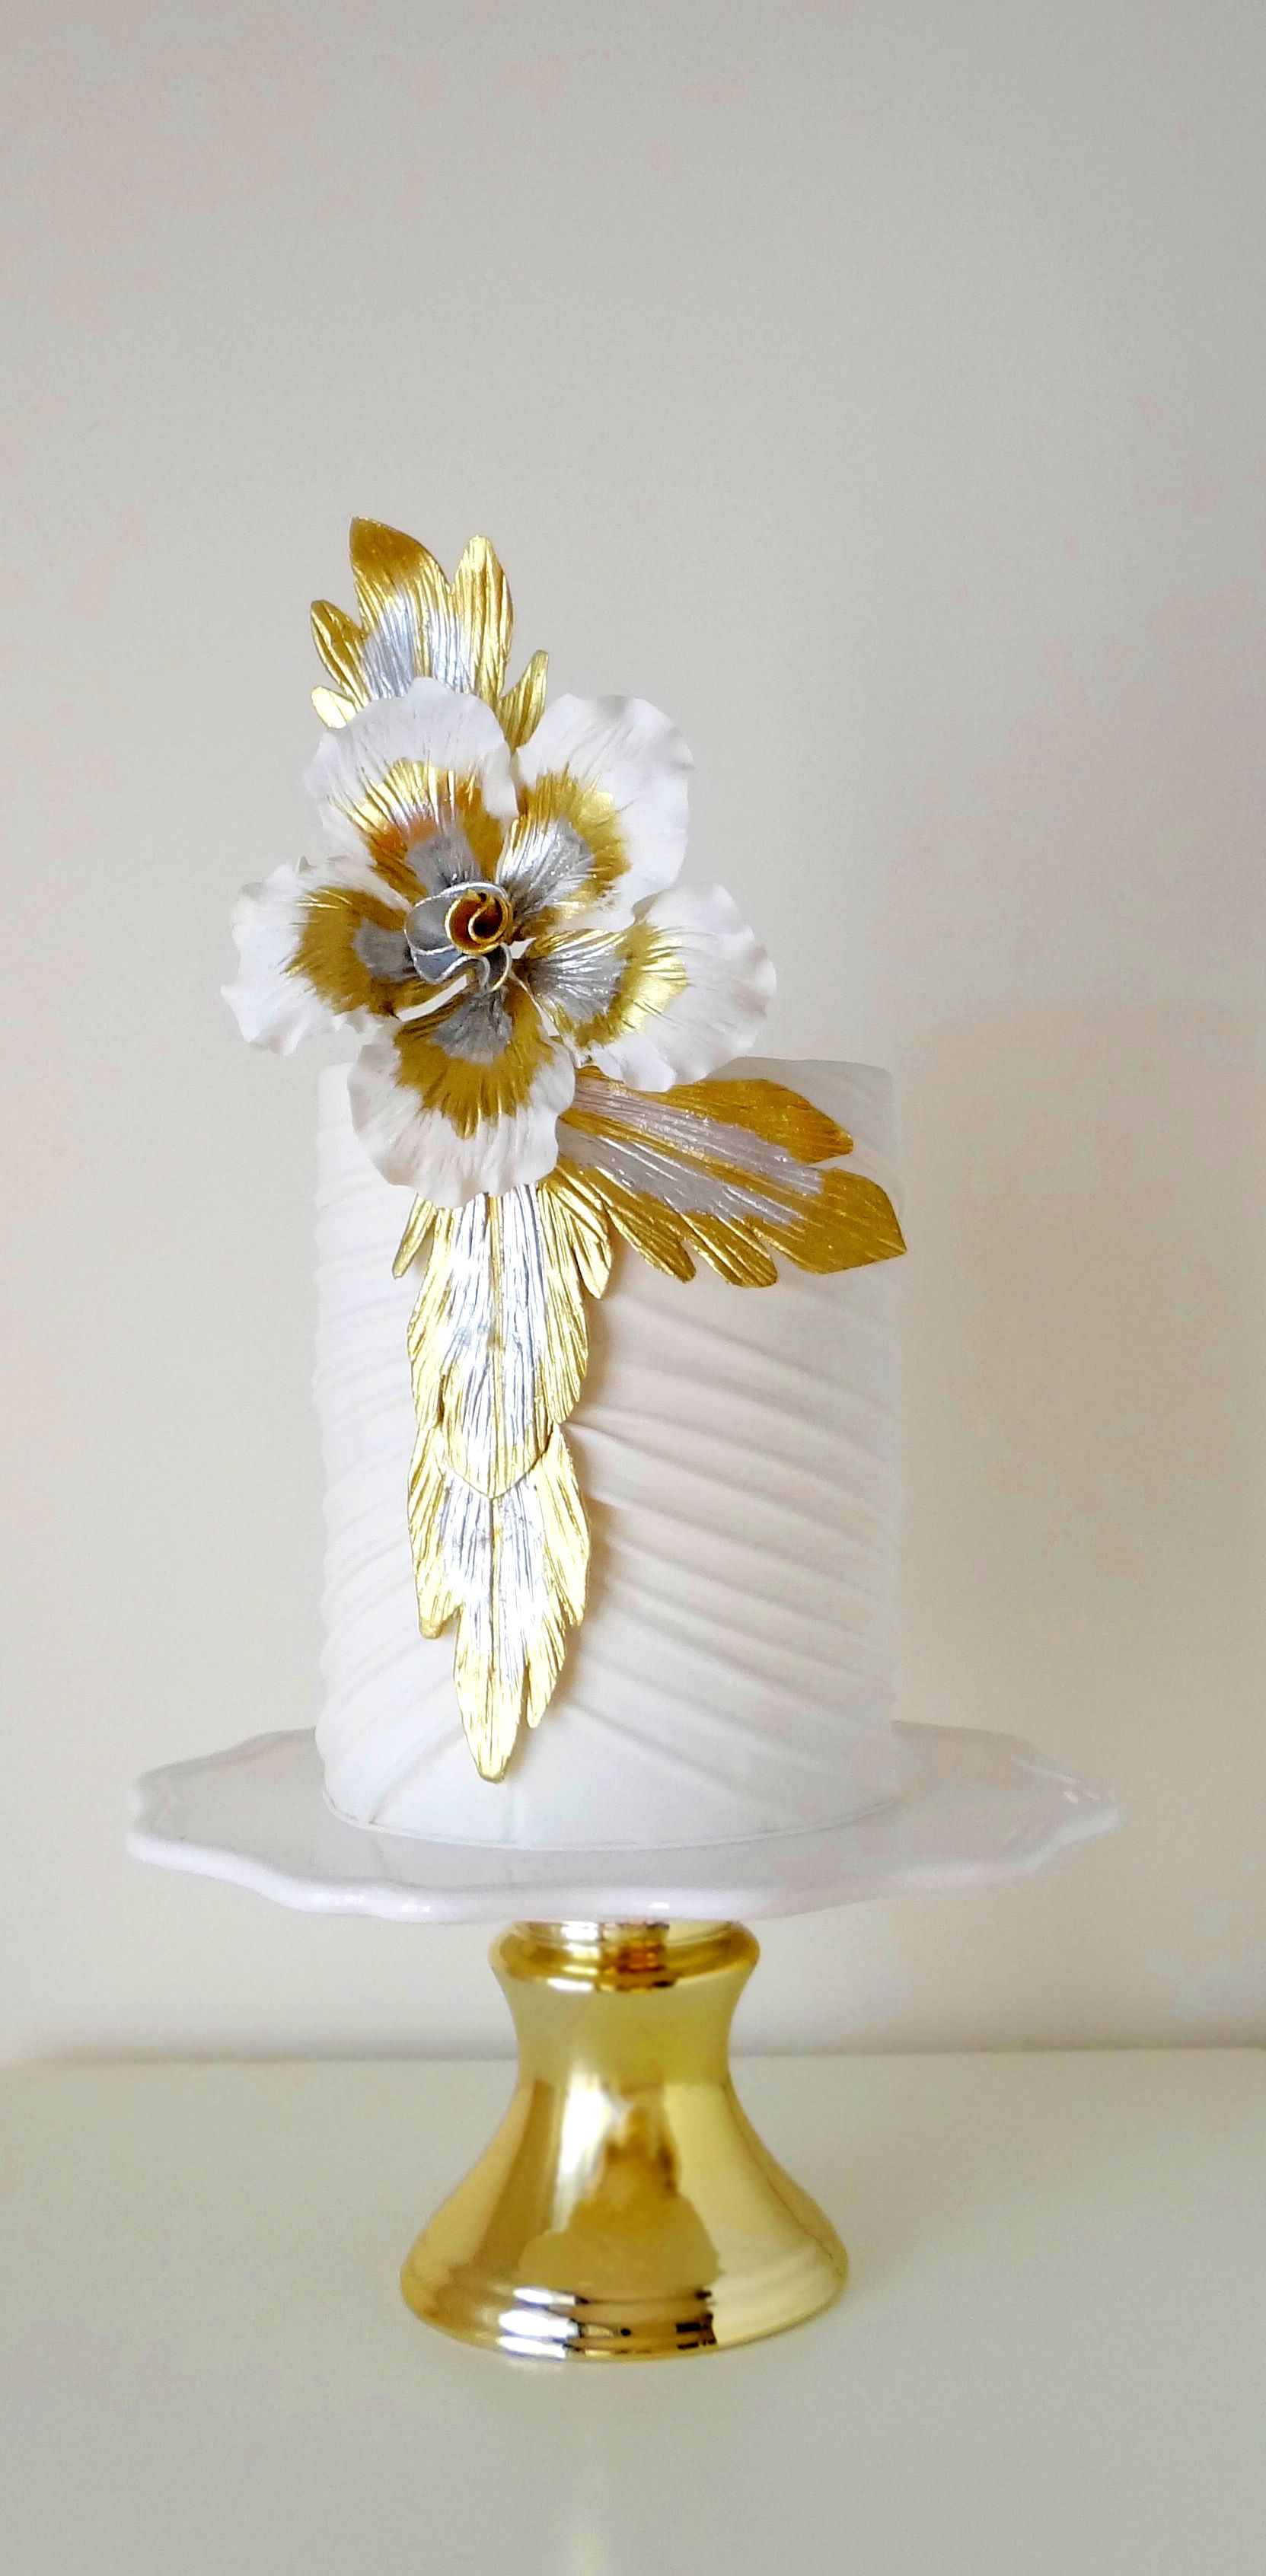 Sex in the city dress inspired wedding cake with gold